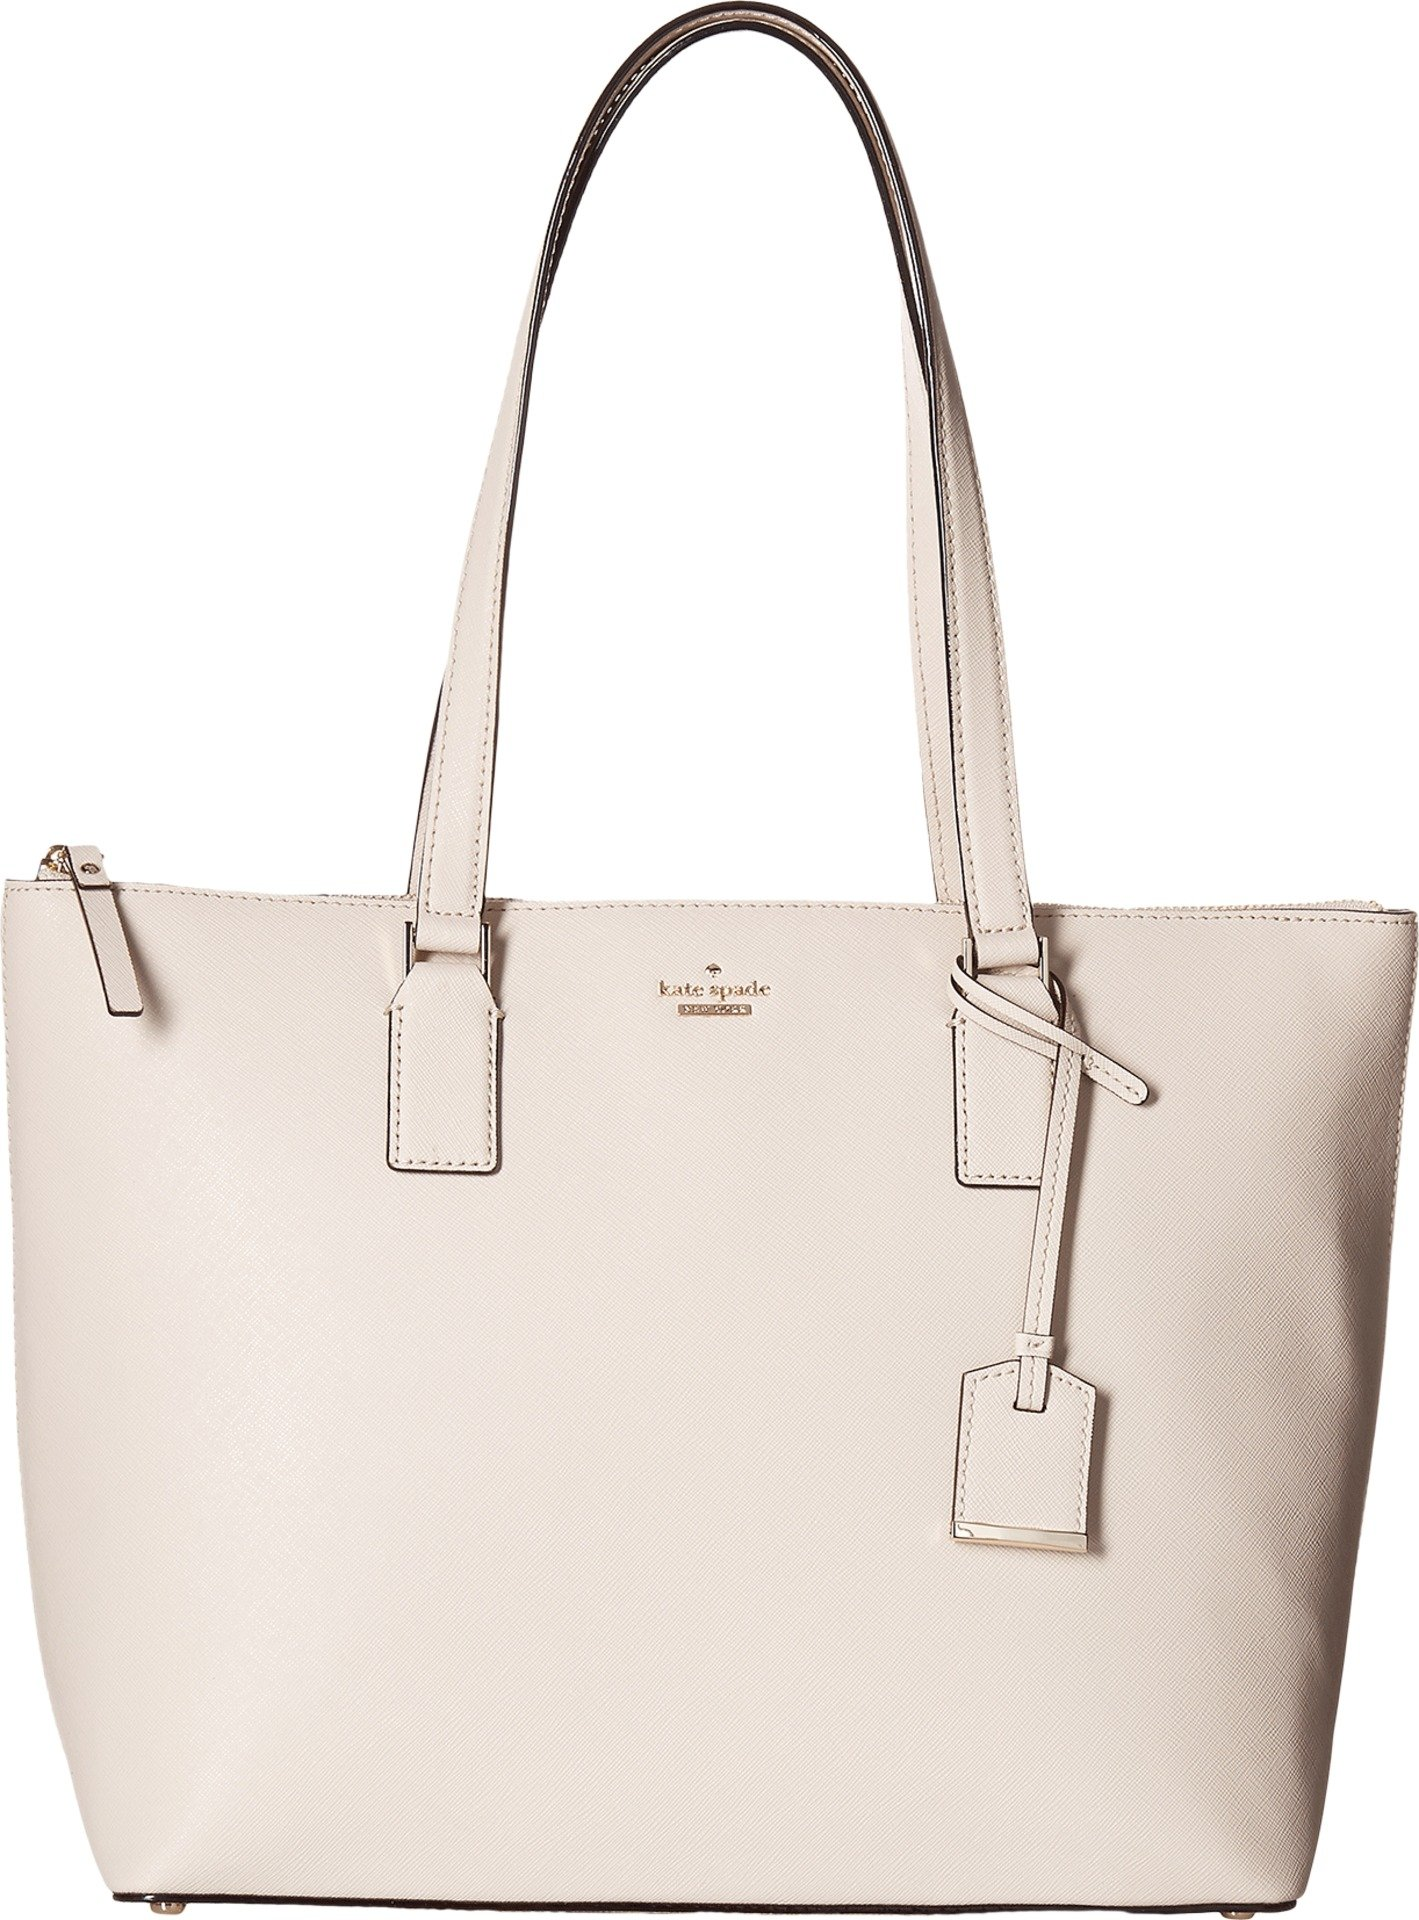 Kate Spade New York Women's Cameron Street Lucie Tote, Tusk, One Size